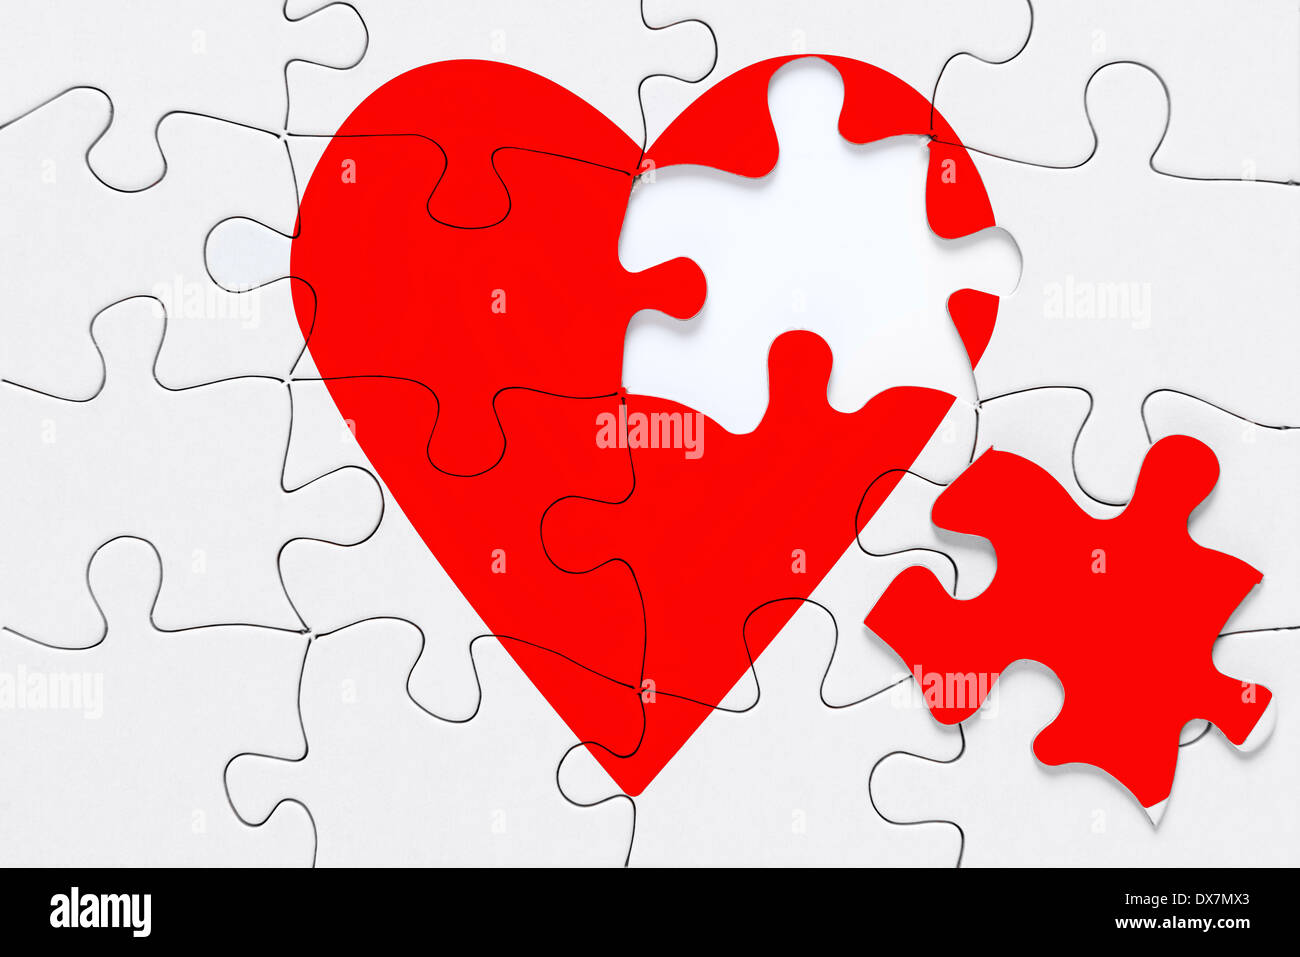 A red heart jigsaw puzzle with a piece on the side, good image for a broken heart, love, romance and Valentine themes. Stock Photo